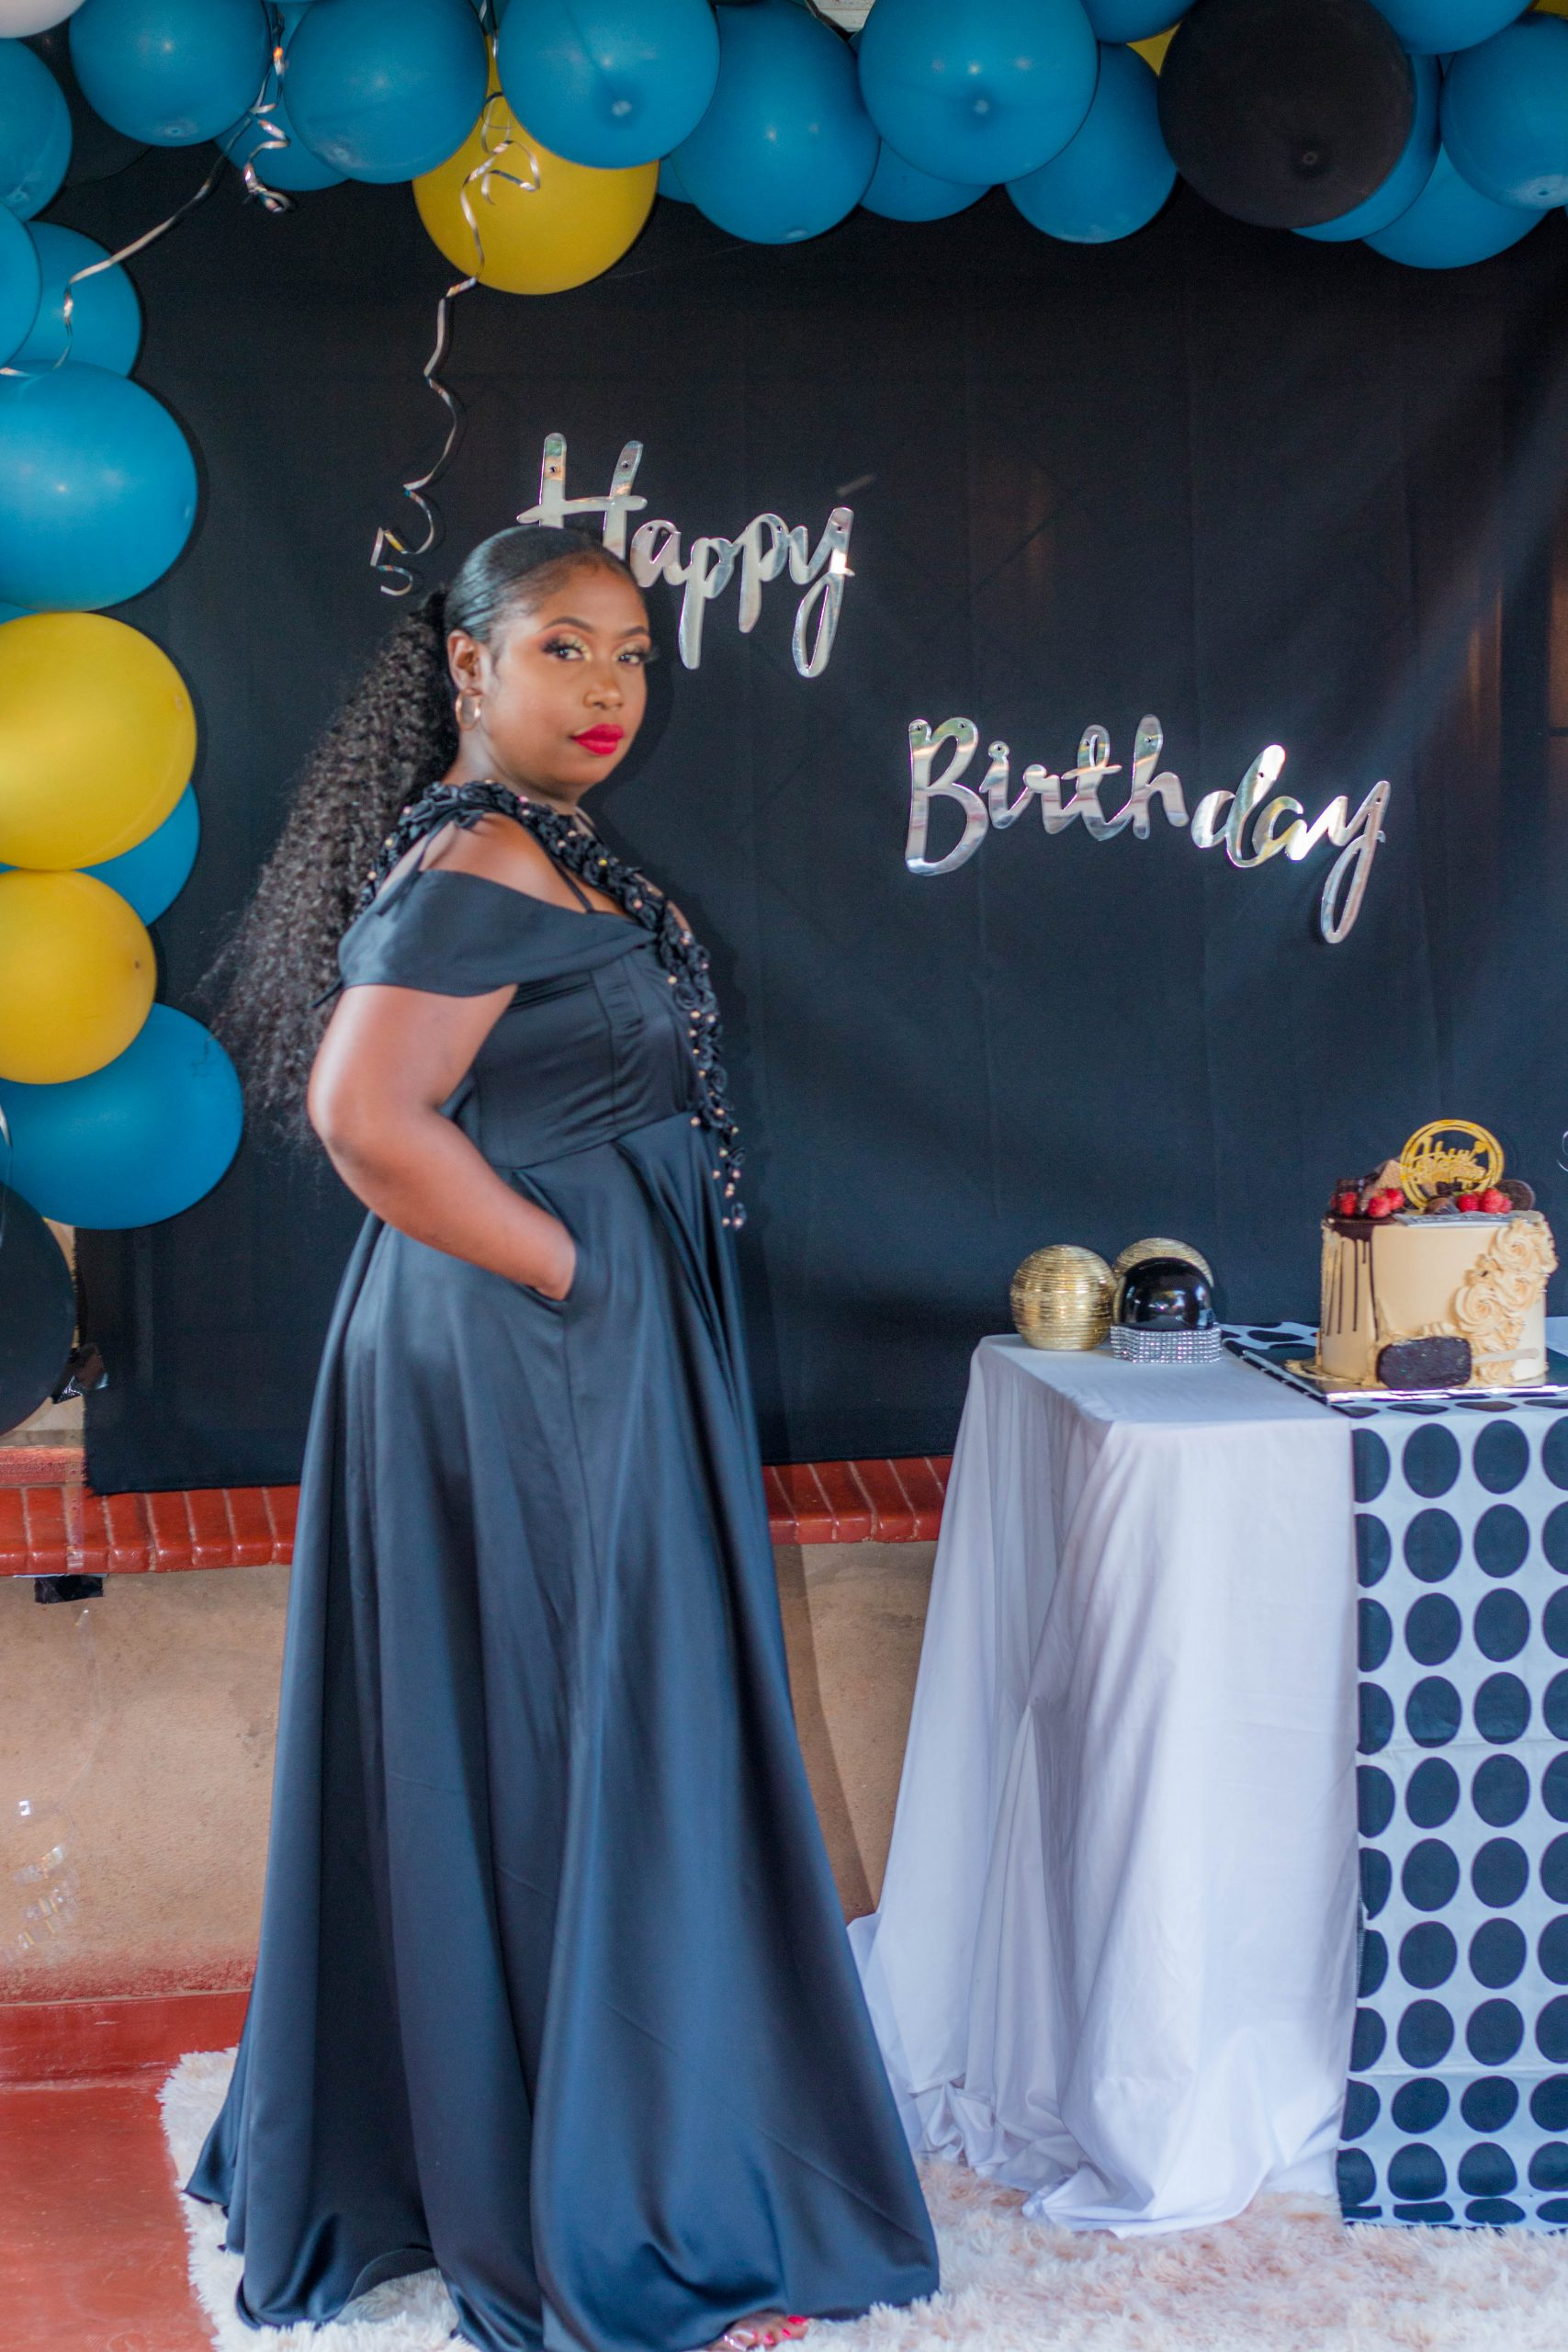 Cynthia Dresses herself for her birthday party